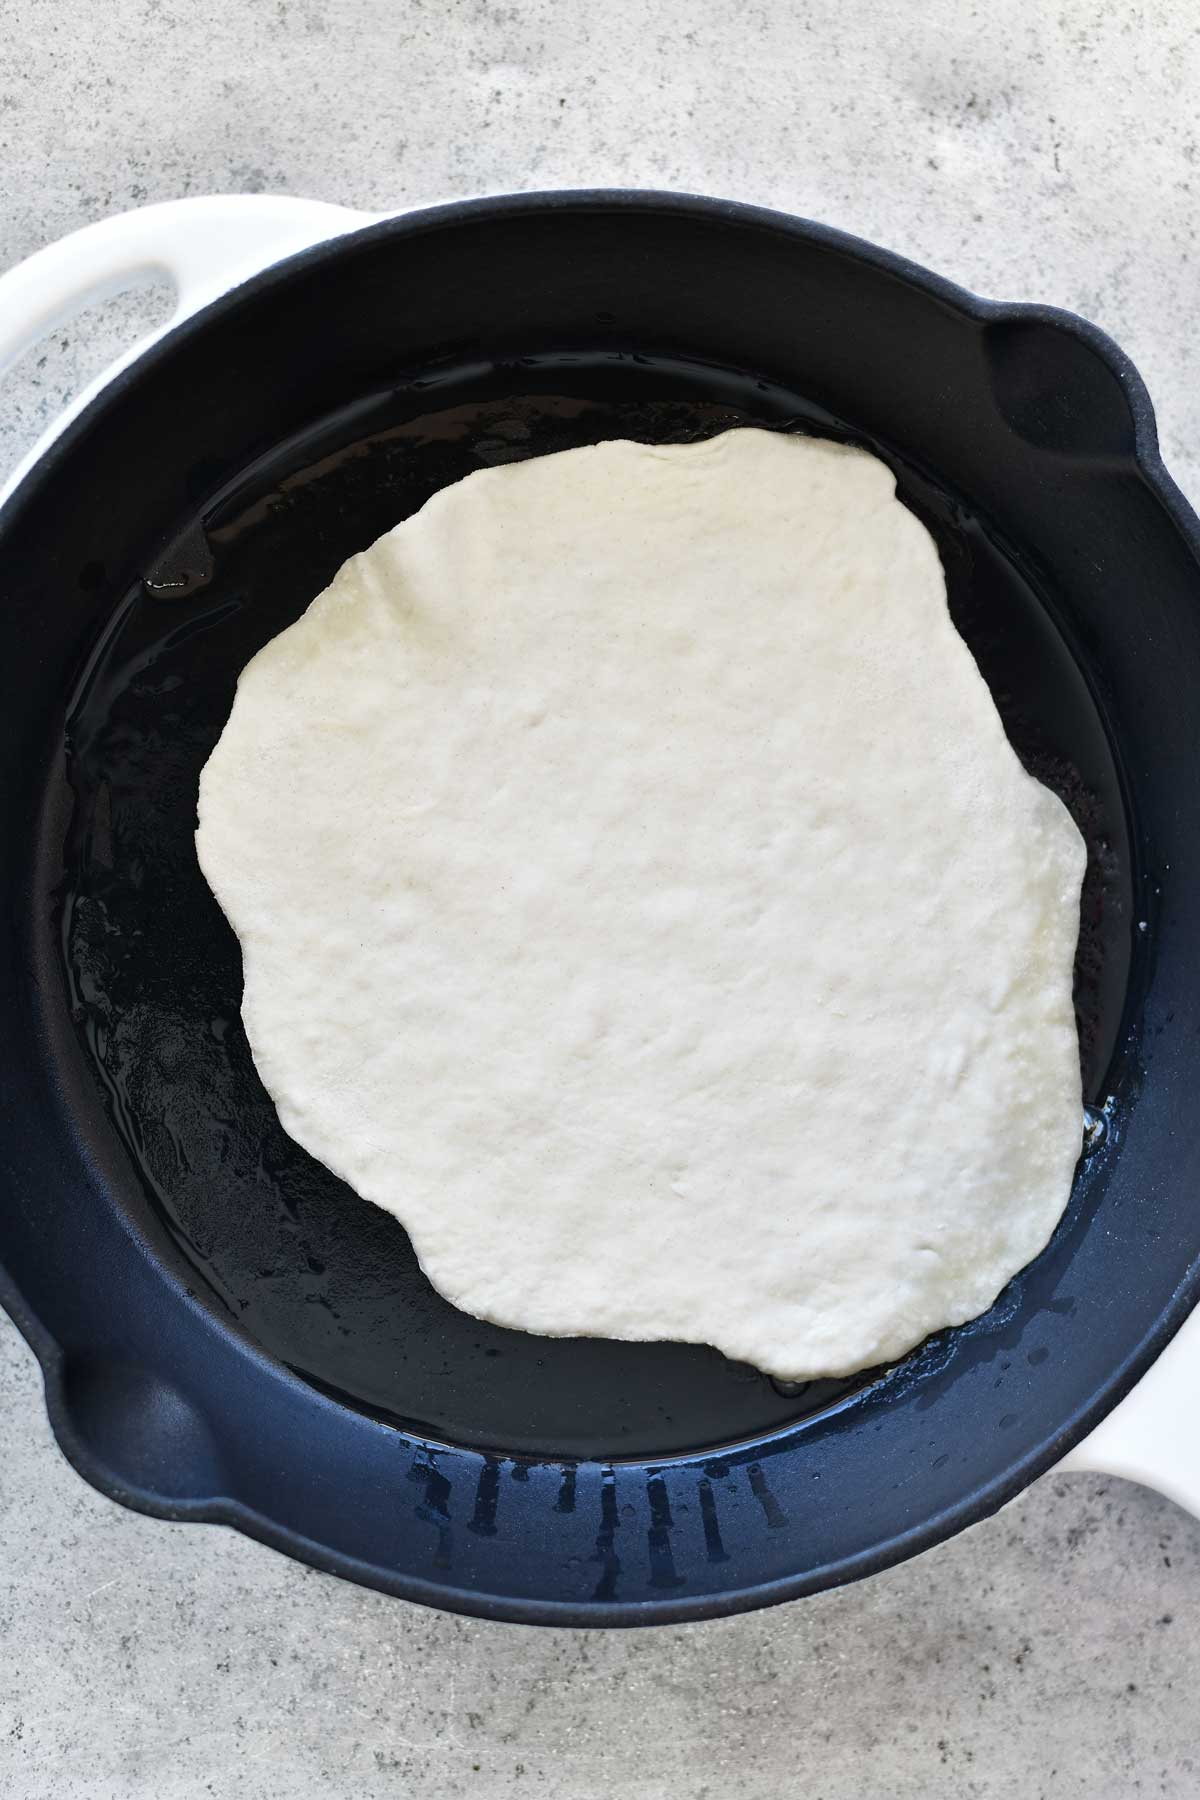 frying two ingredient dough in cast iron skillet for naan flatbread